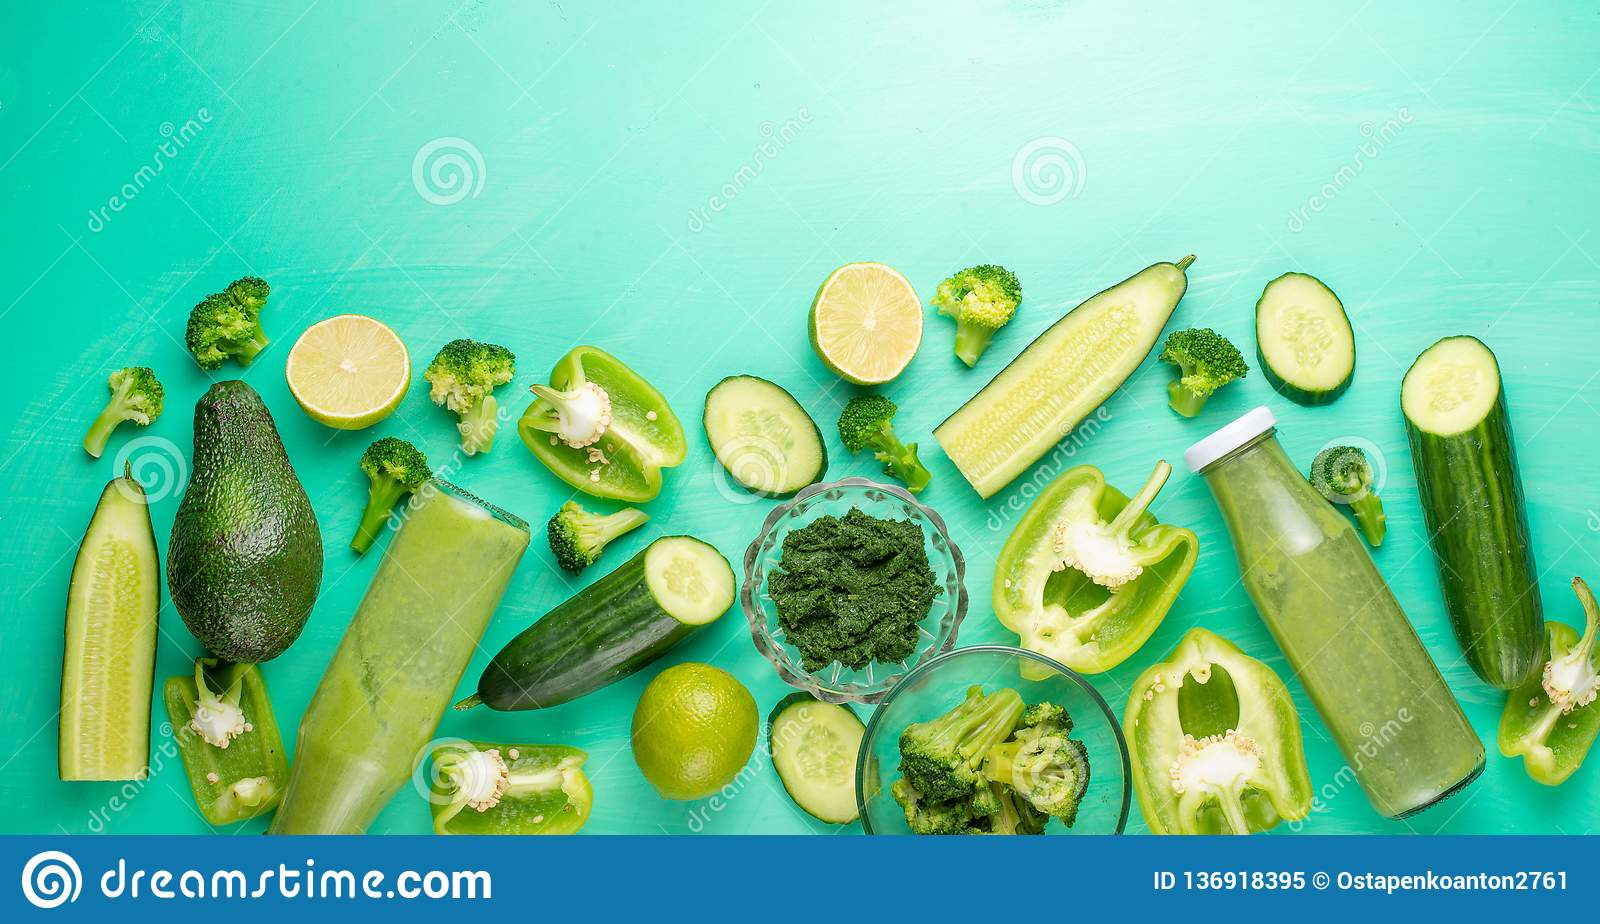 Green vegetables. For cooking healthy and wholesome food. Healthy green vegan cooking ingredients. Banner for design. Top view,